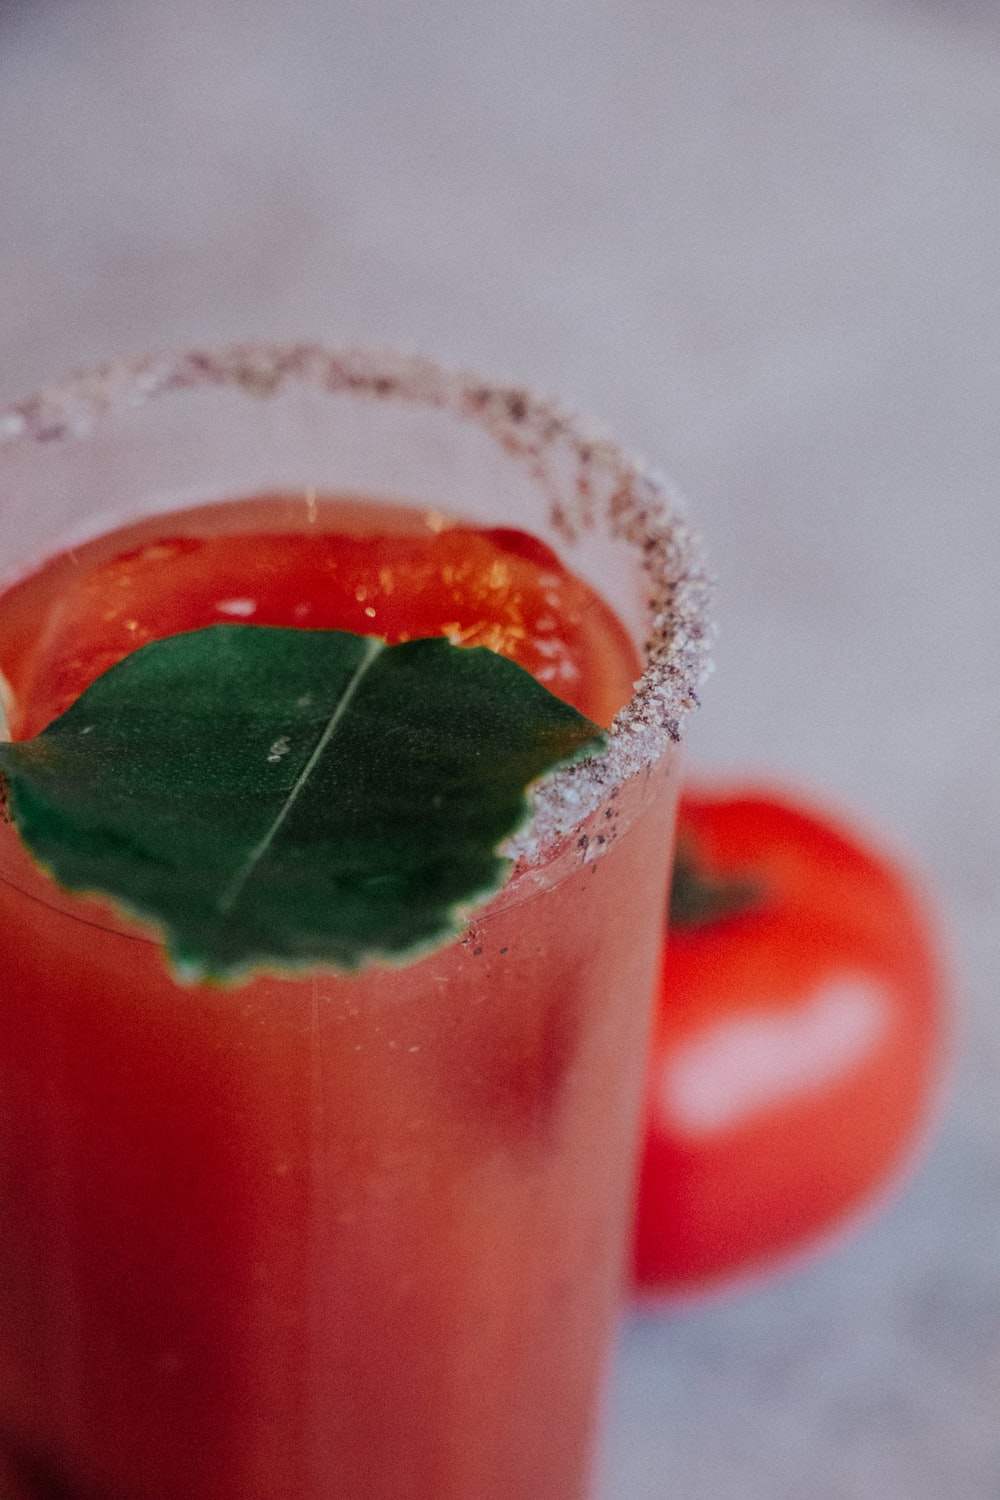 clear drinking glass with tomato juice